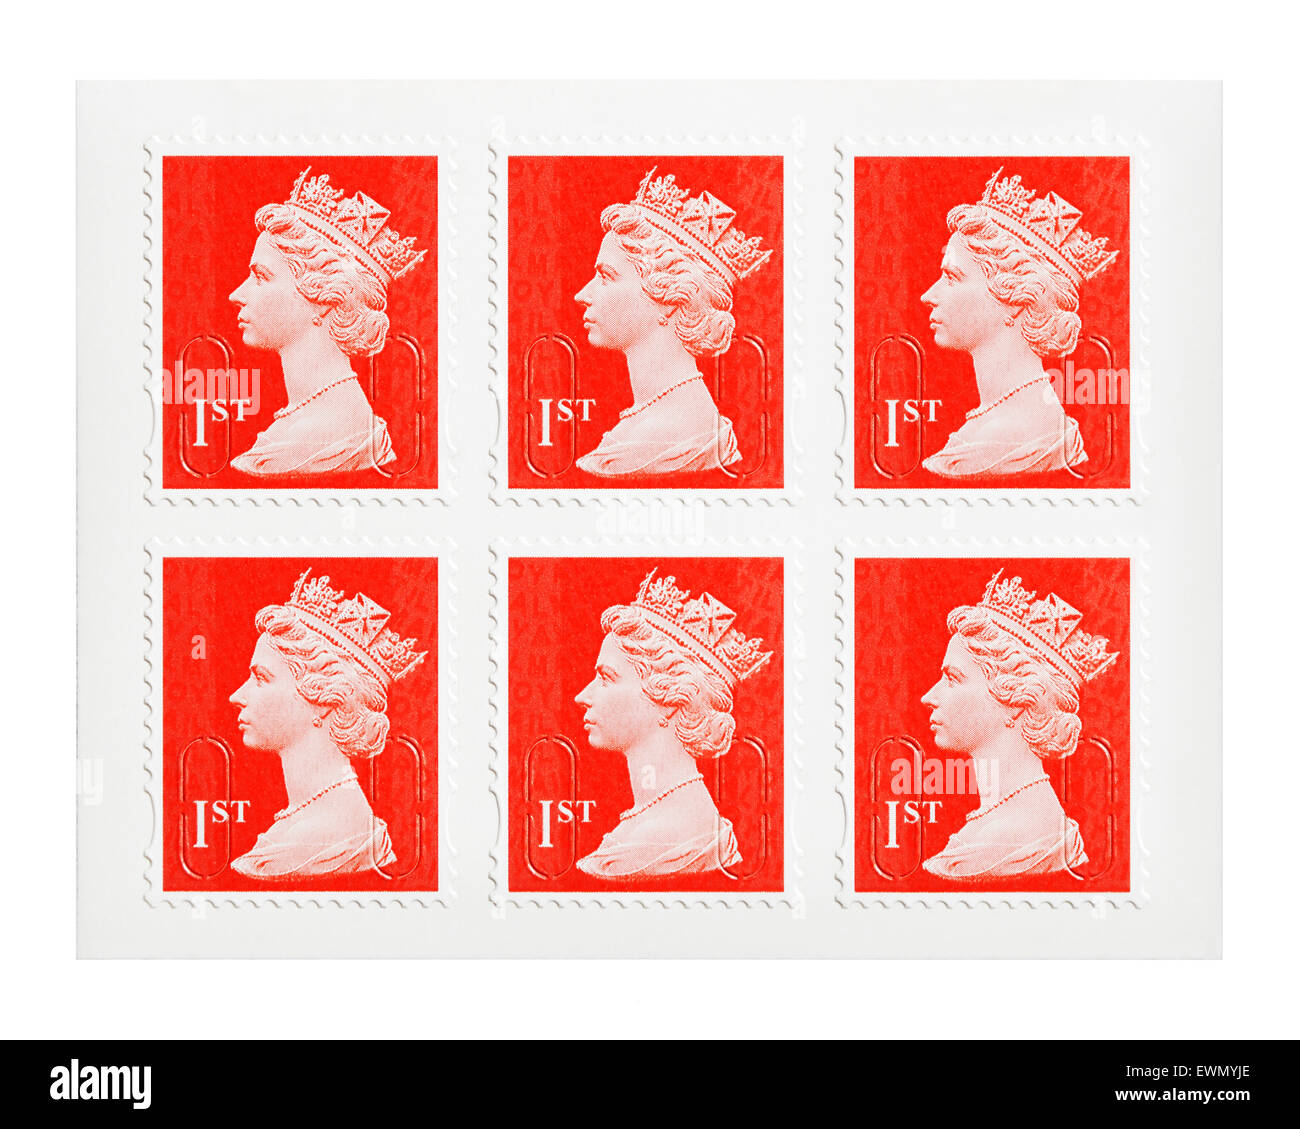 First Class Postage Stamps, UK. - Stock Image